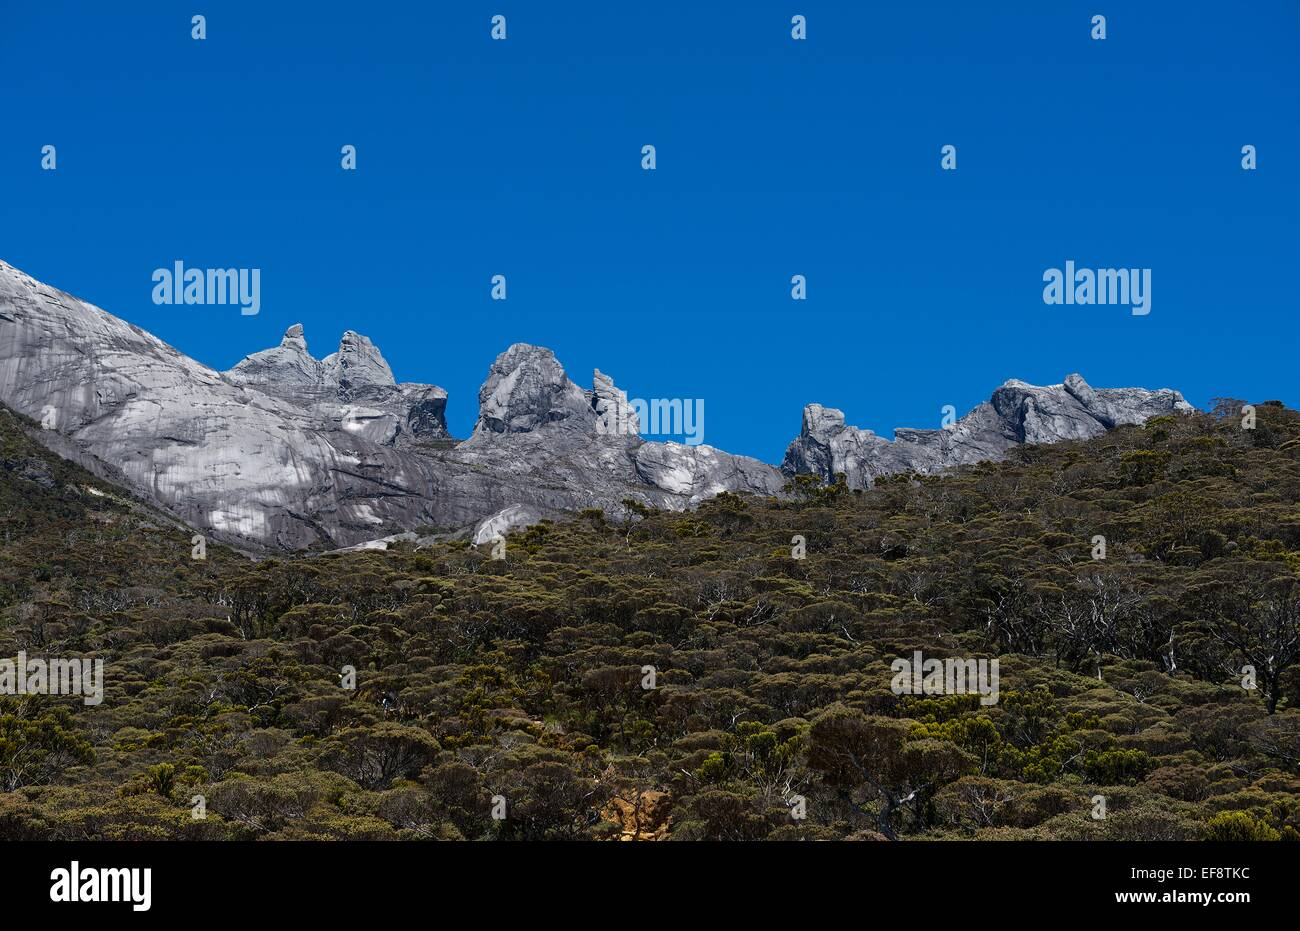 Borneo, Kota Kinabalu, View of mountains Stock Photo